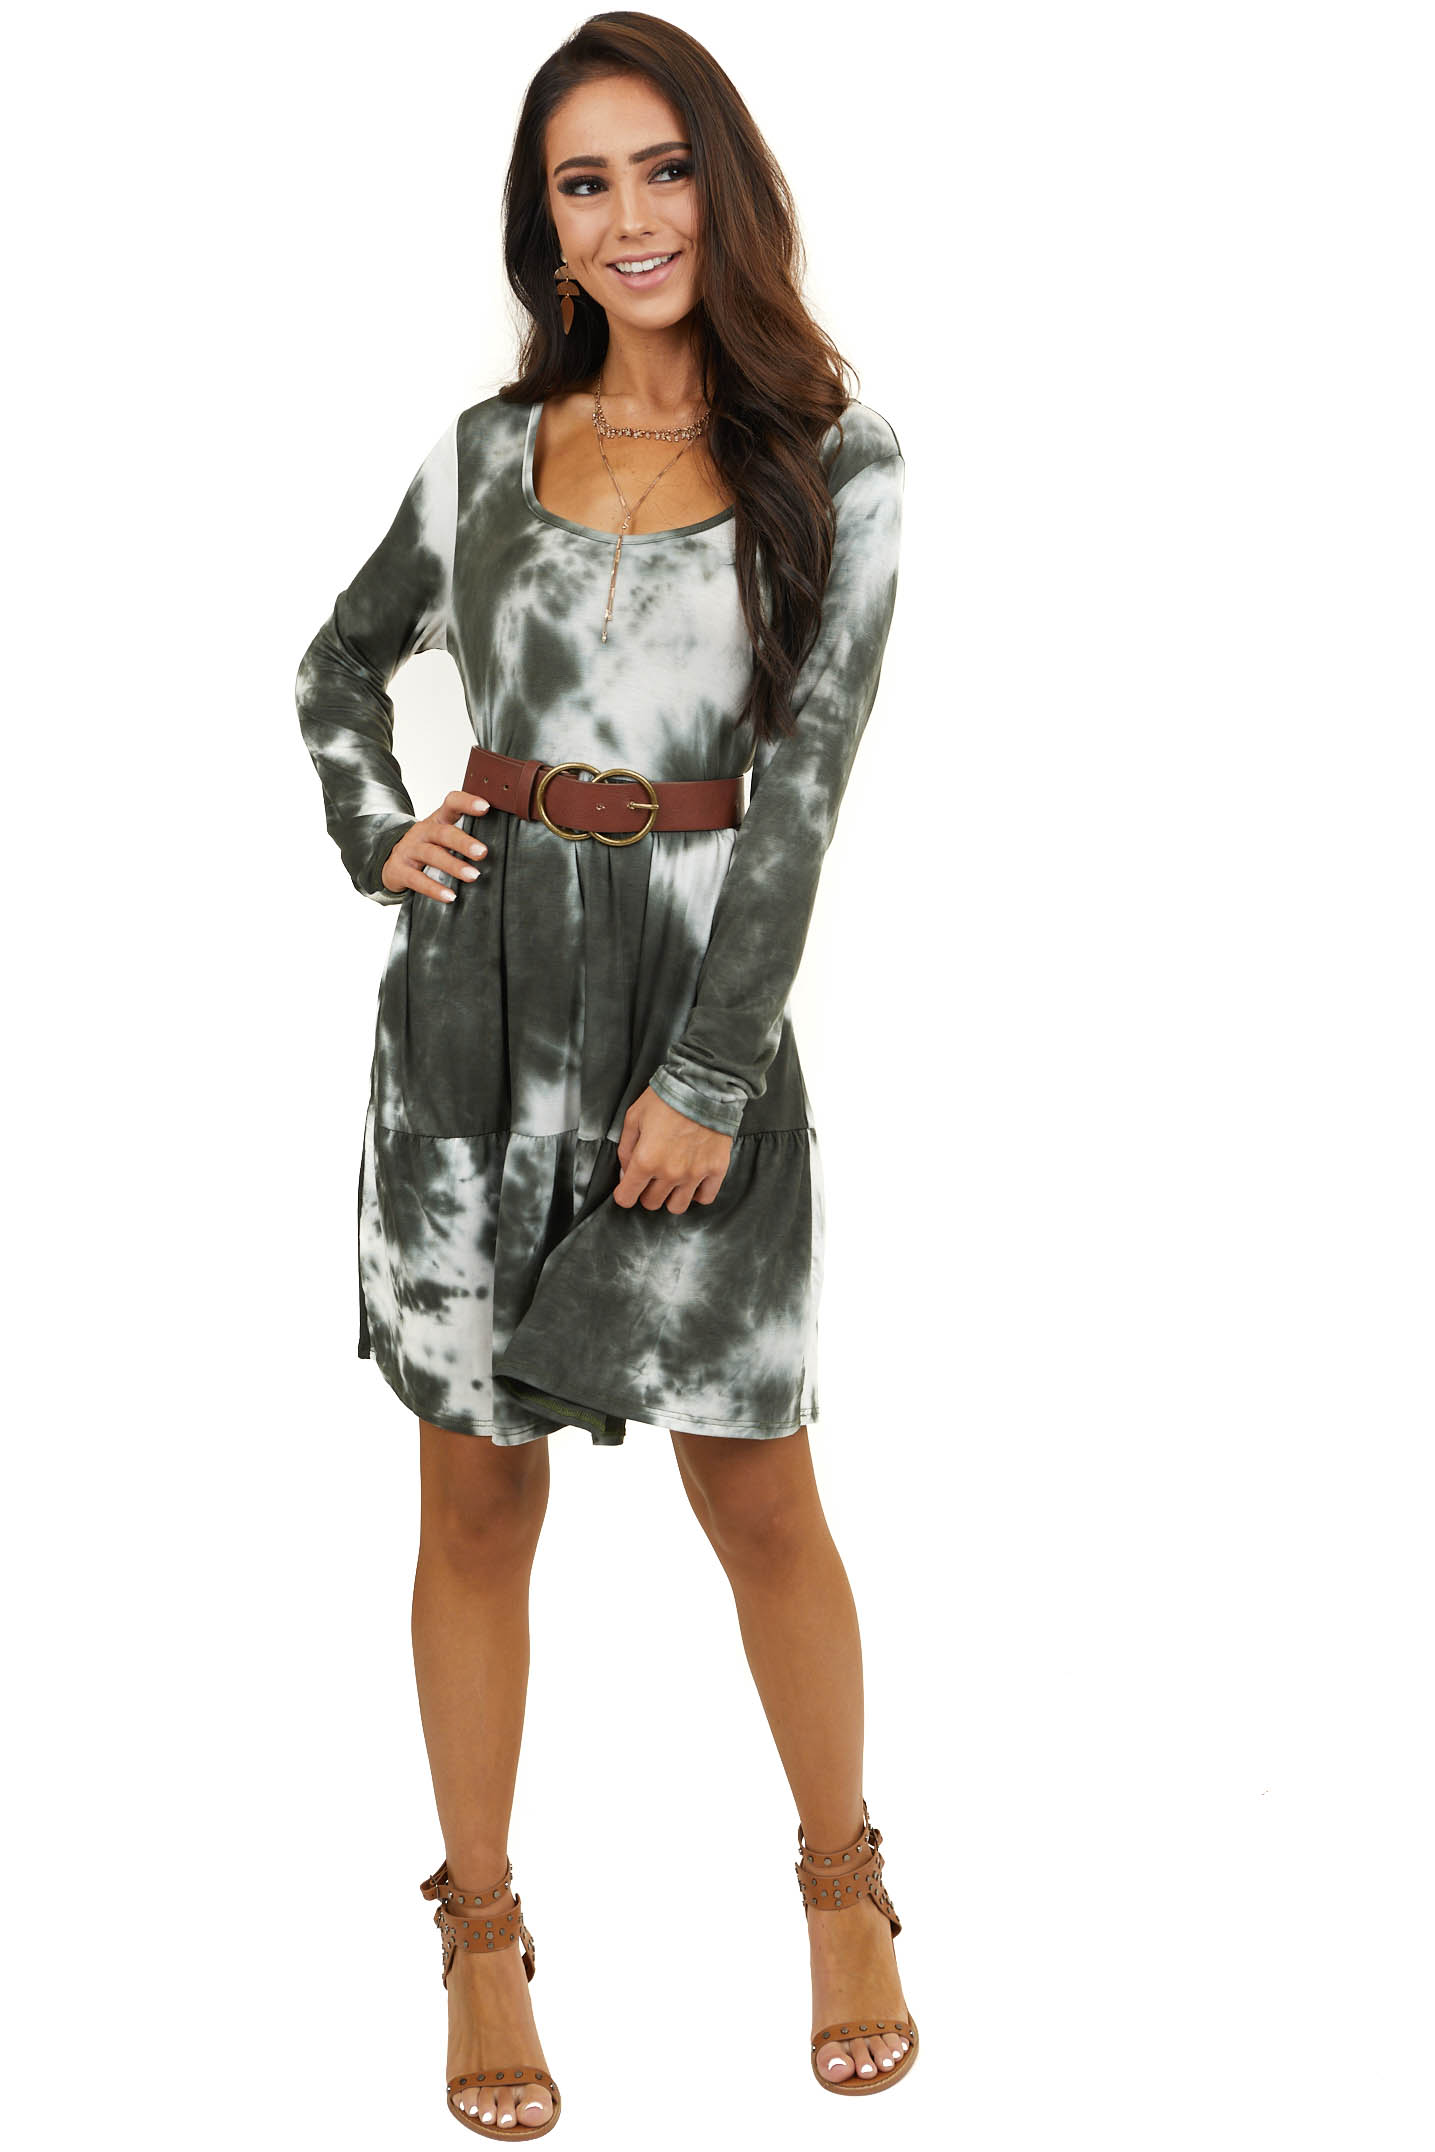 Hunter Green and Ivory Long Sleeve Tie Dye Knit Dress